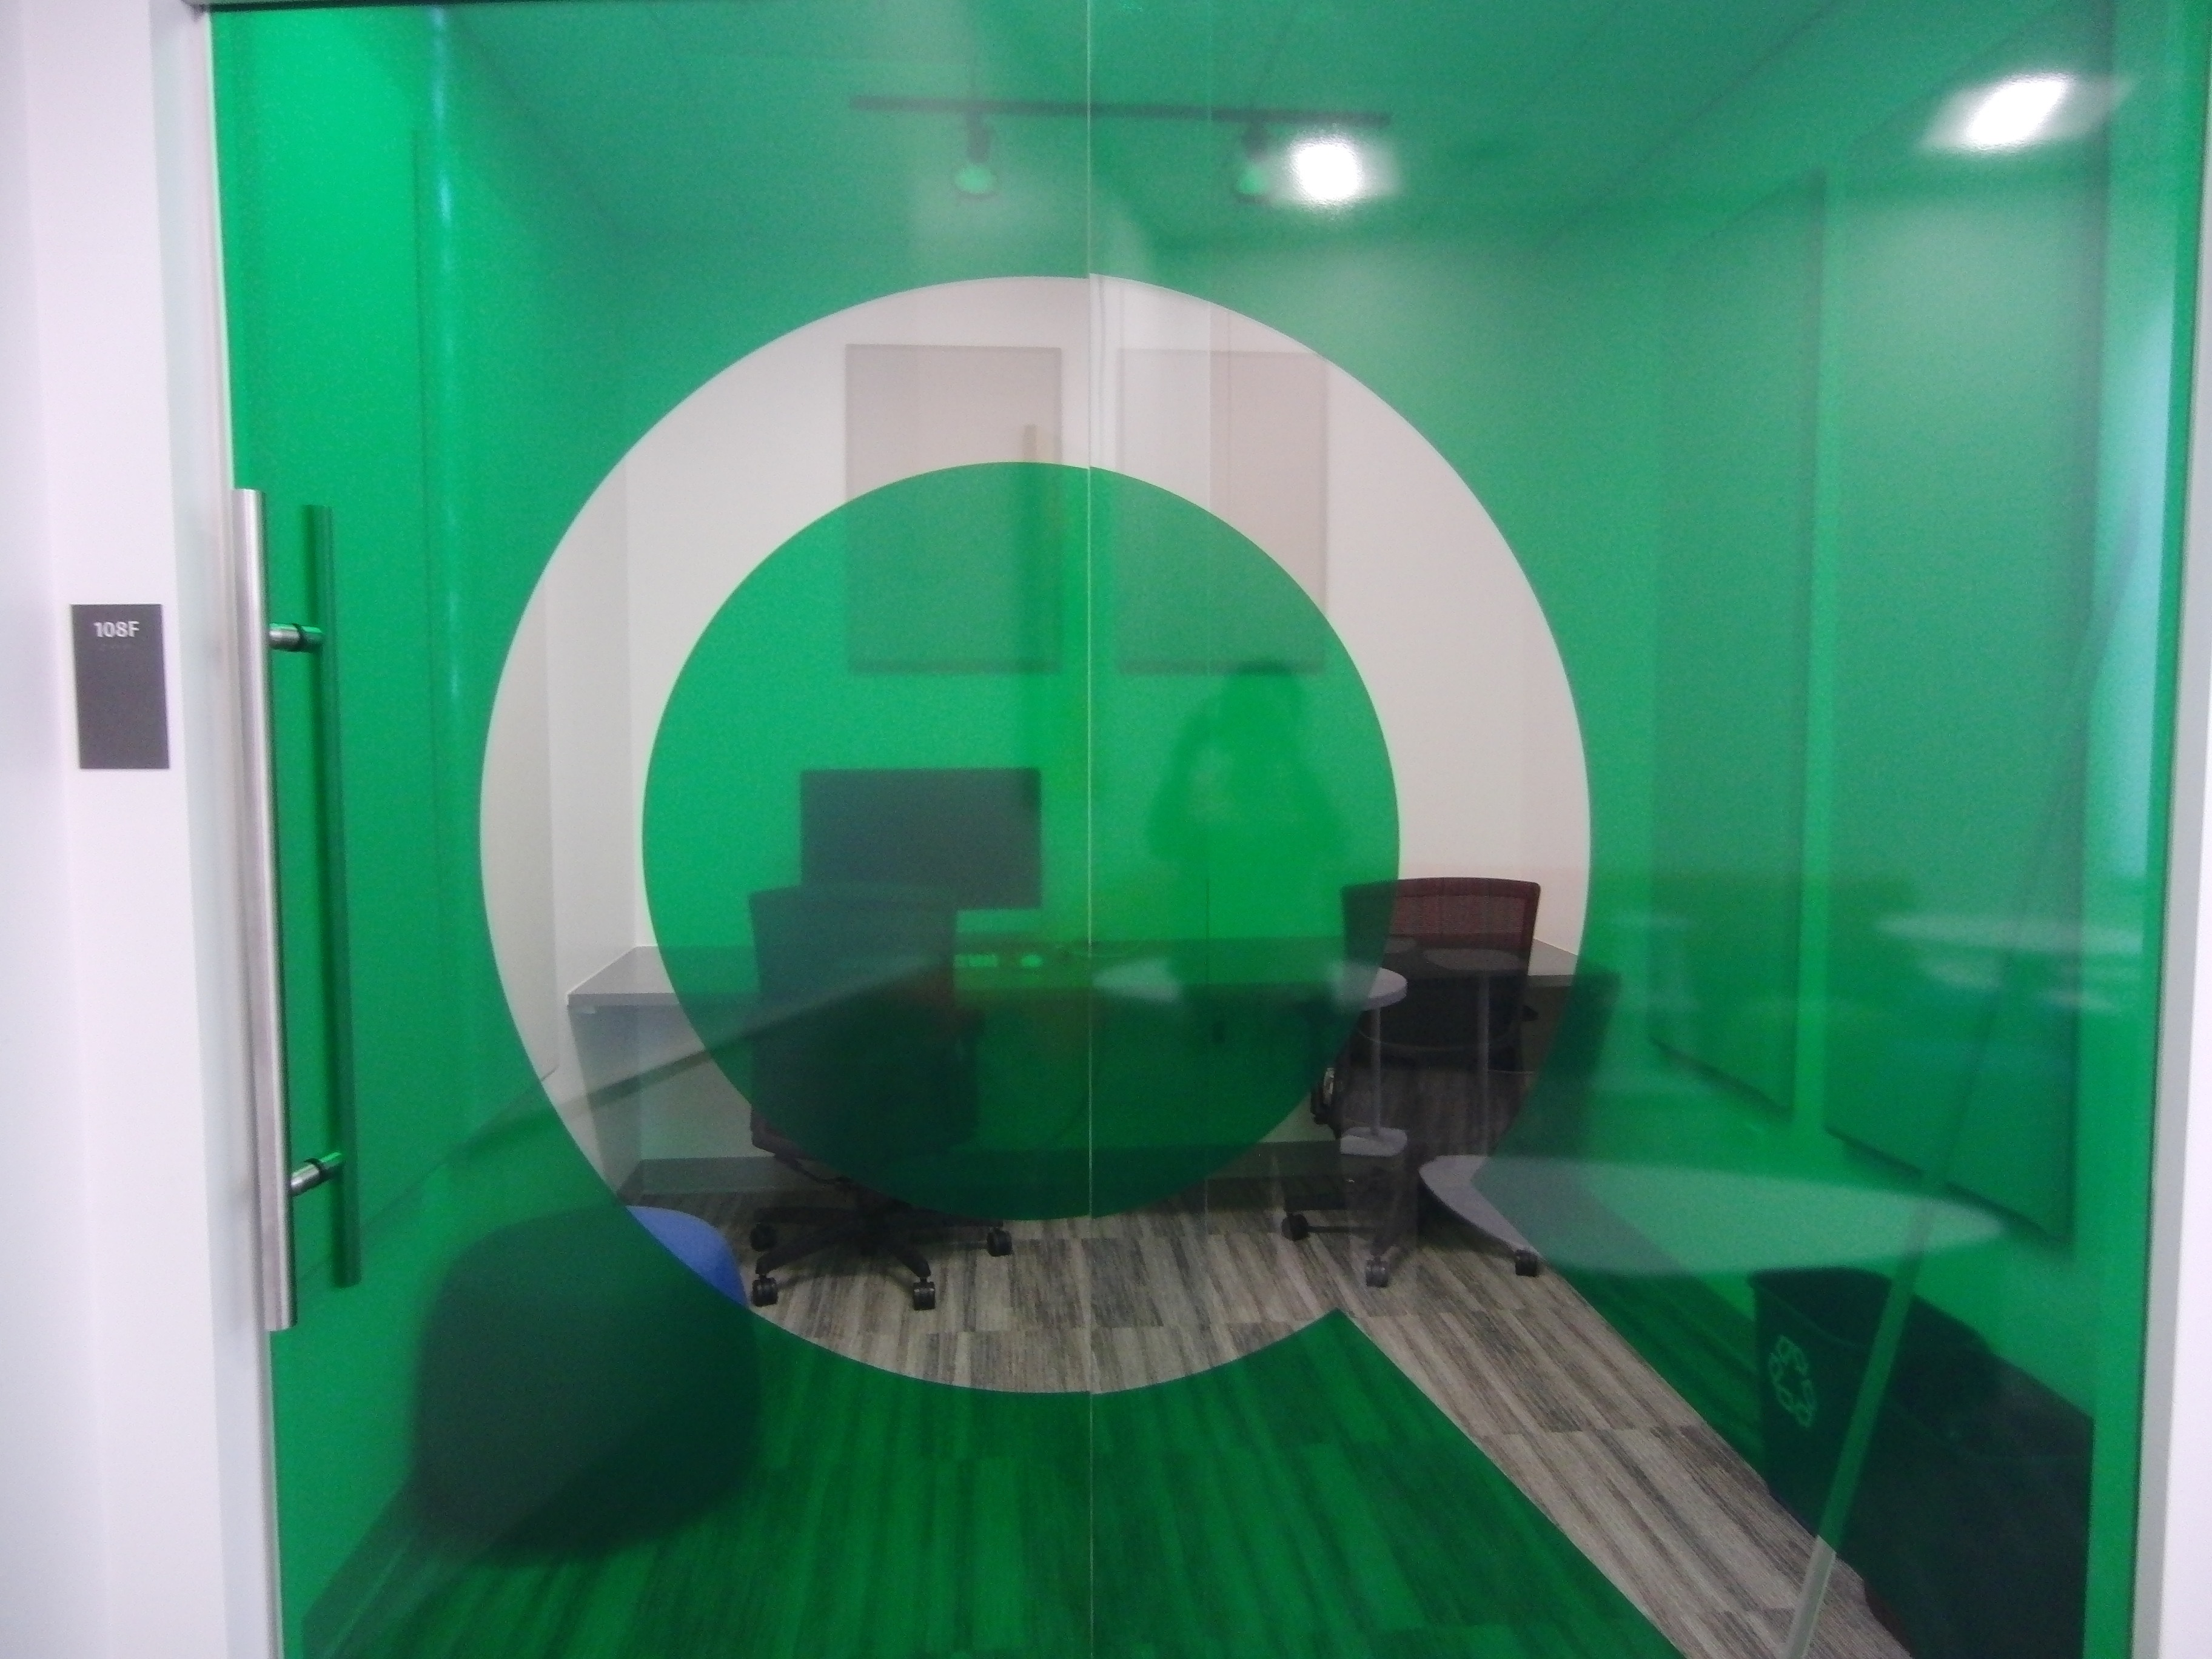 Photo of the space taken from outside of the green glass door